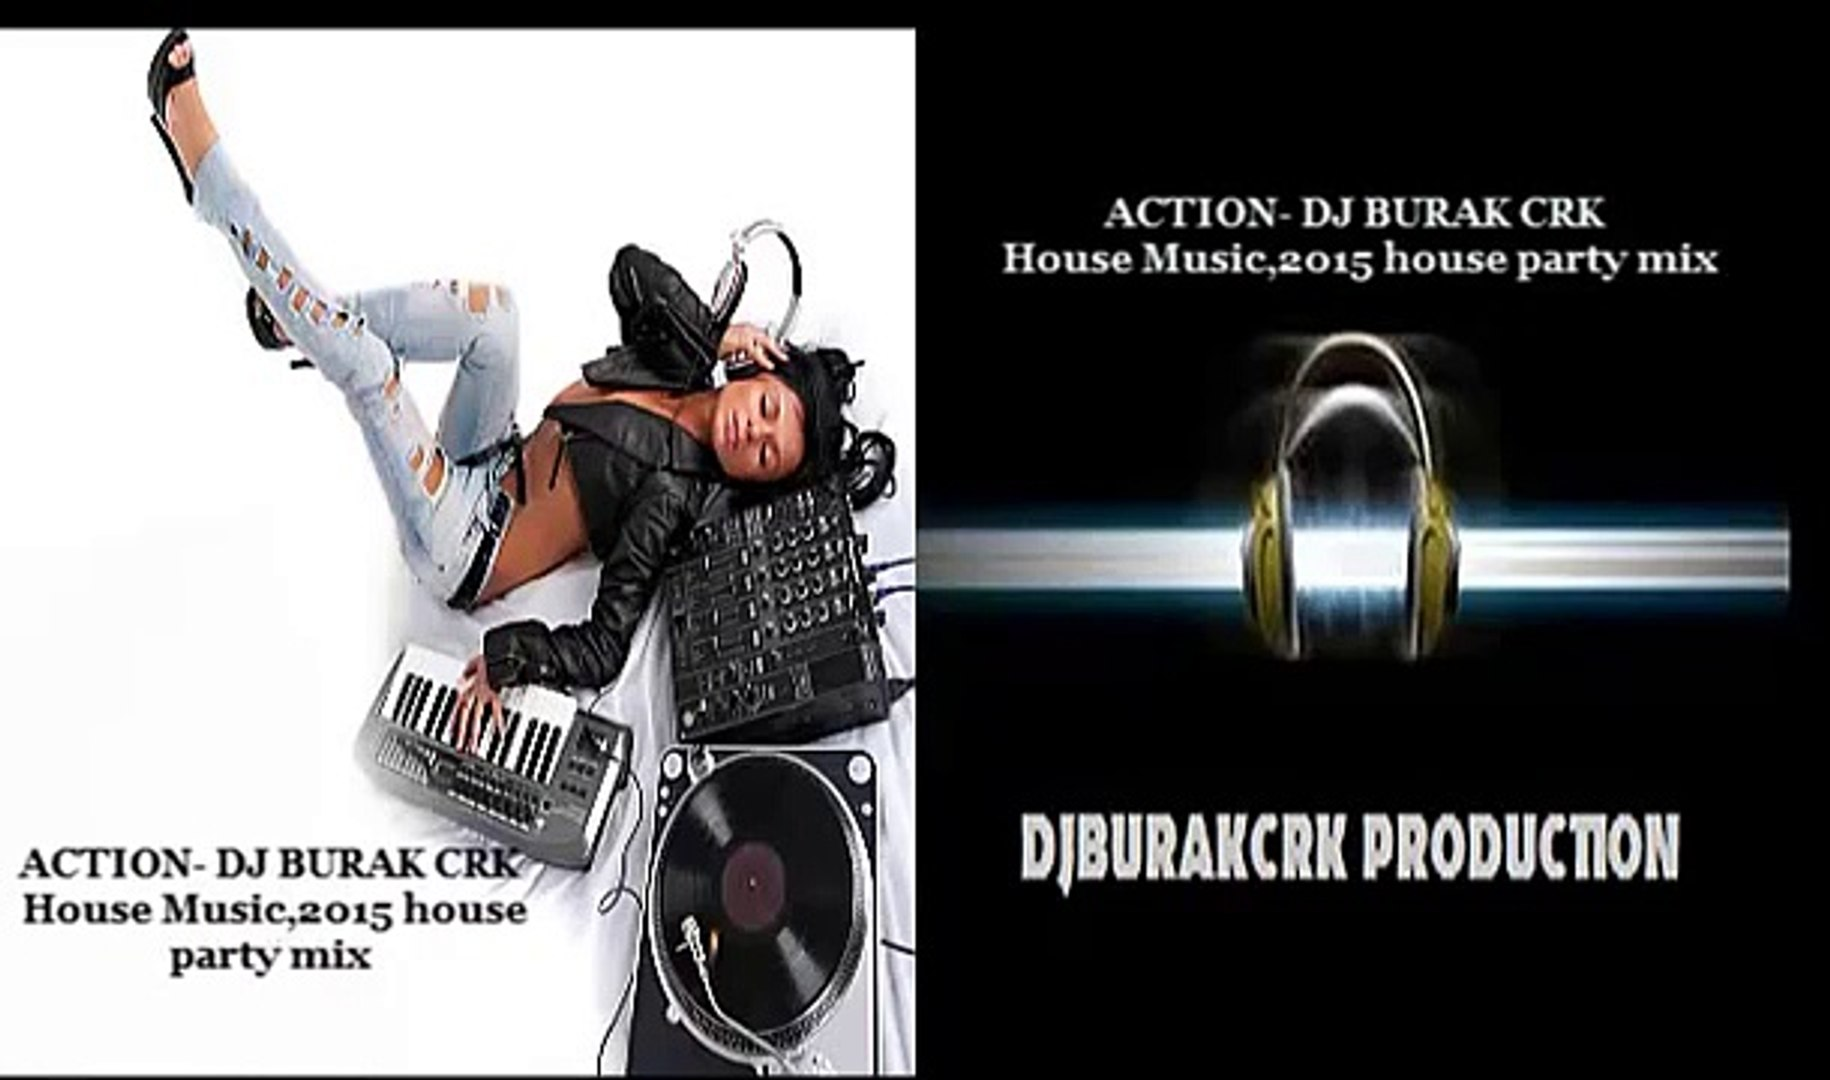 ACTION 2015(original edit)-DJ BURAK CRK 2015 remix Club House 2015 electro club house 2015